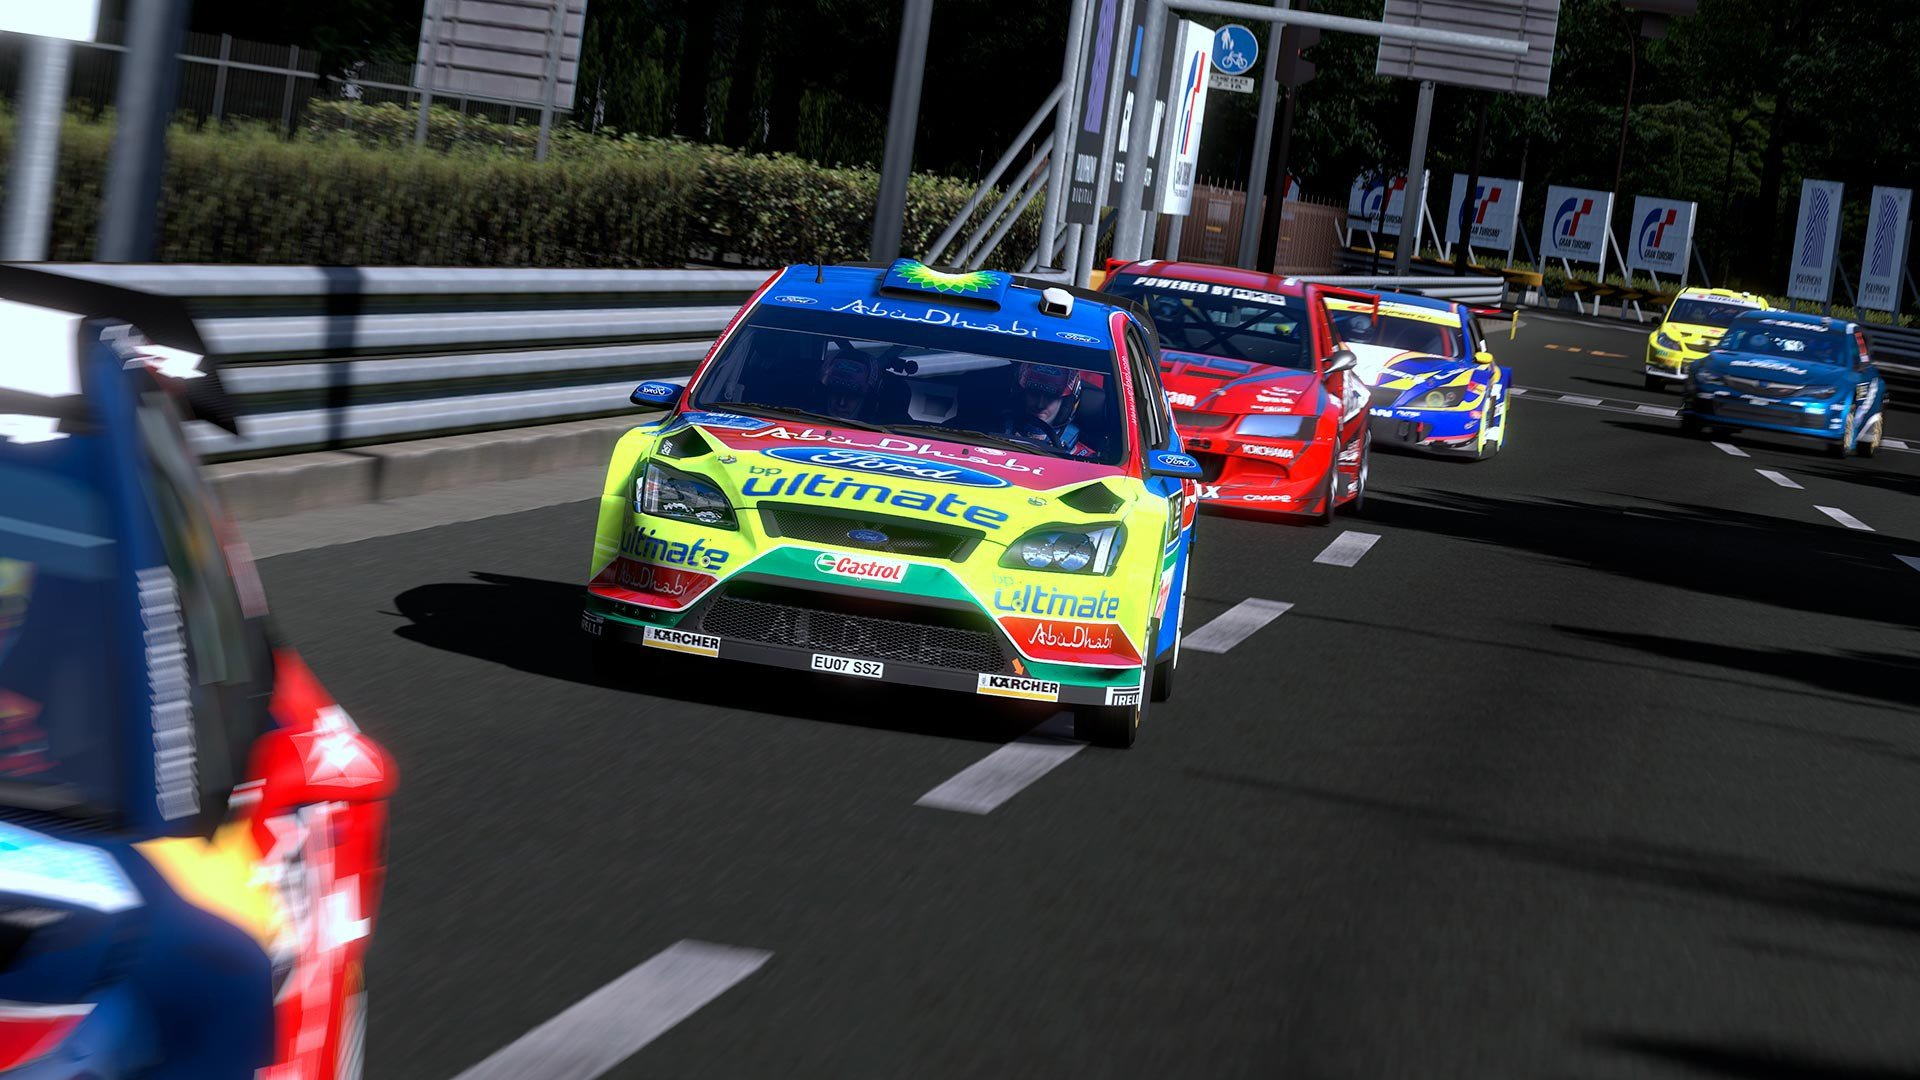 Video games cars Subaru Impreza WRC Mitsubishi Lancer Gran Turismo ...